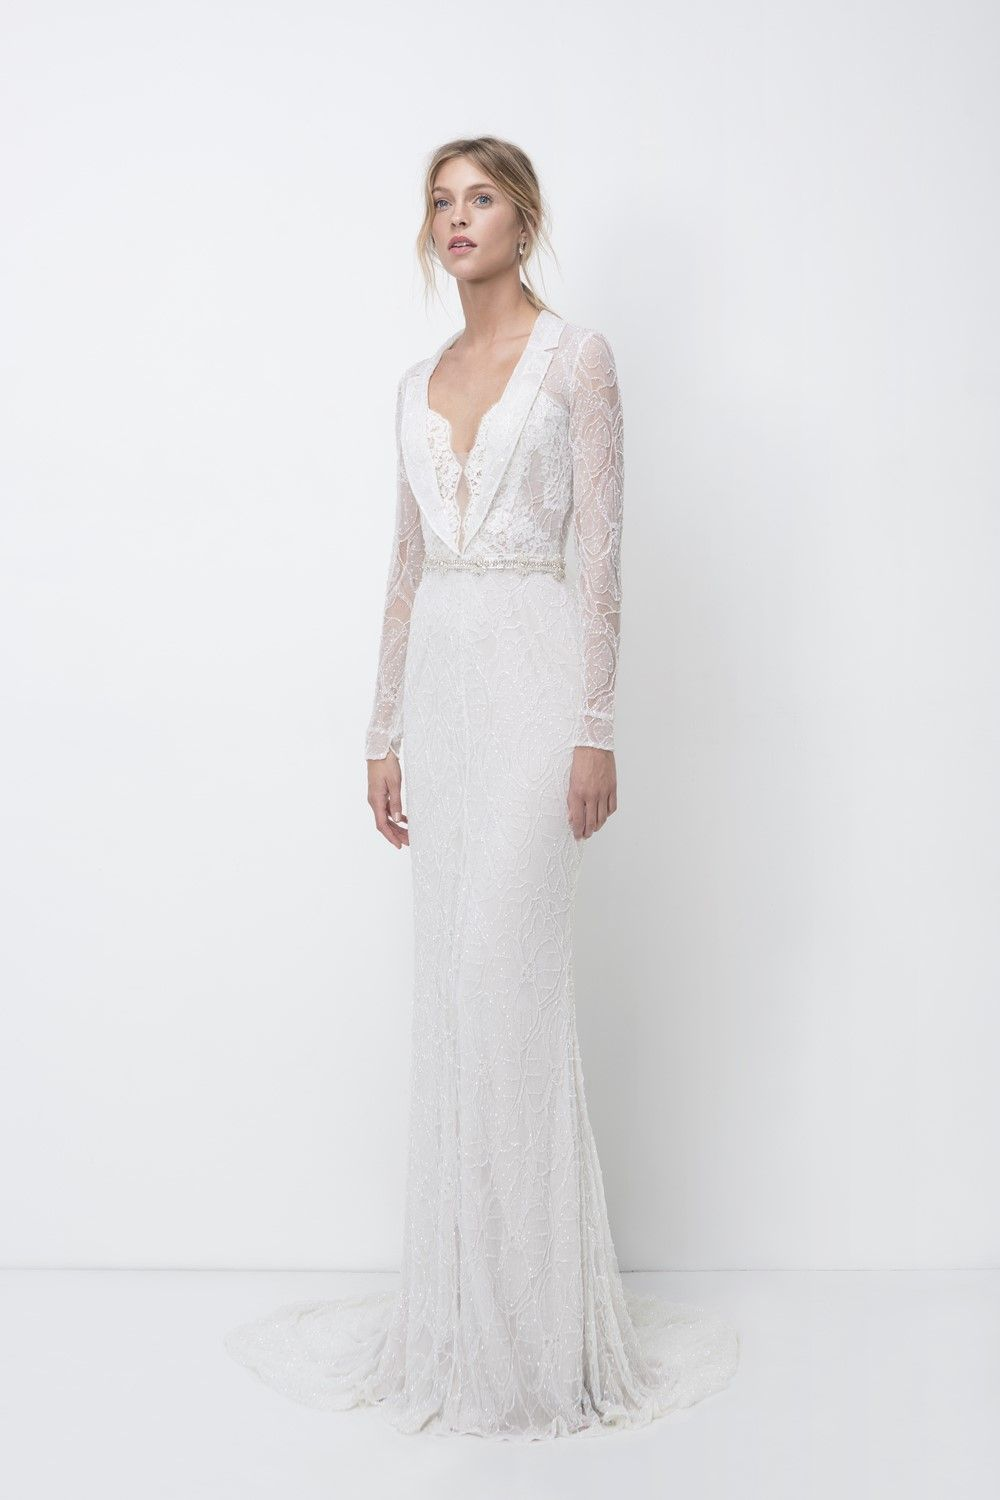 A Whiter Shade of Pale - Lihi Hod\'s 2018 Bridal Collection | Pinterest